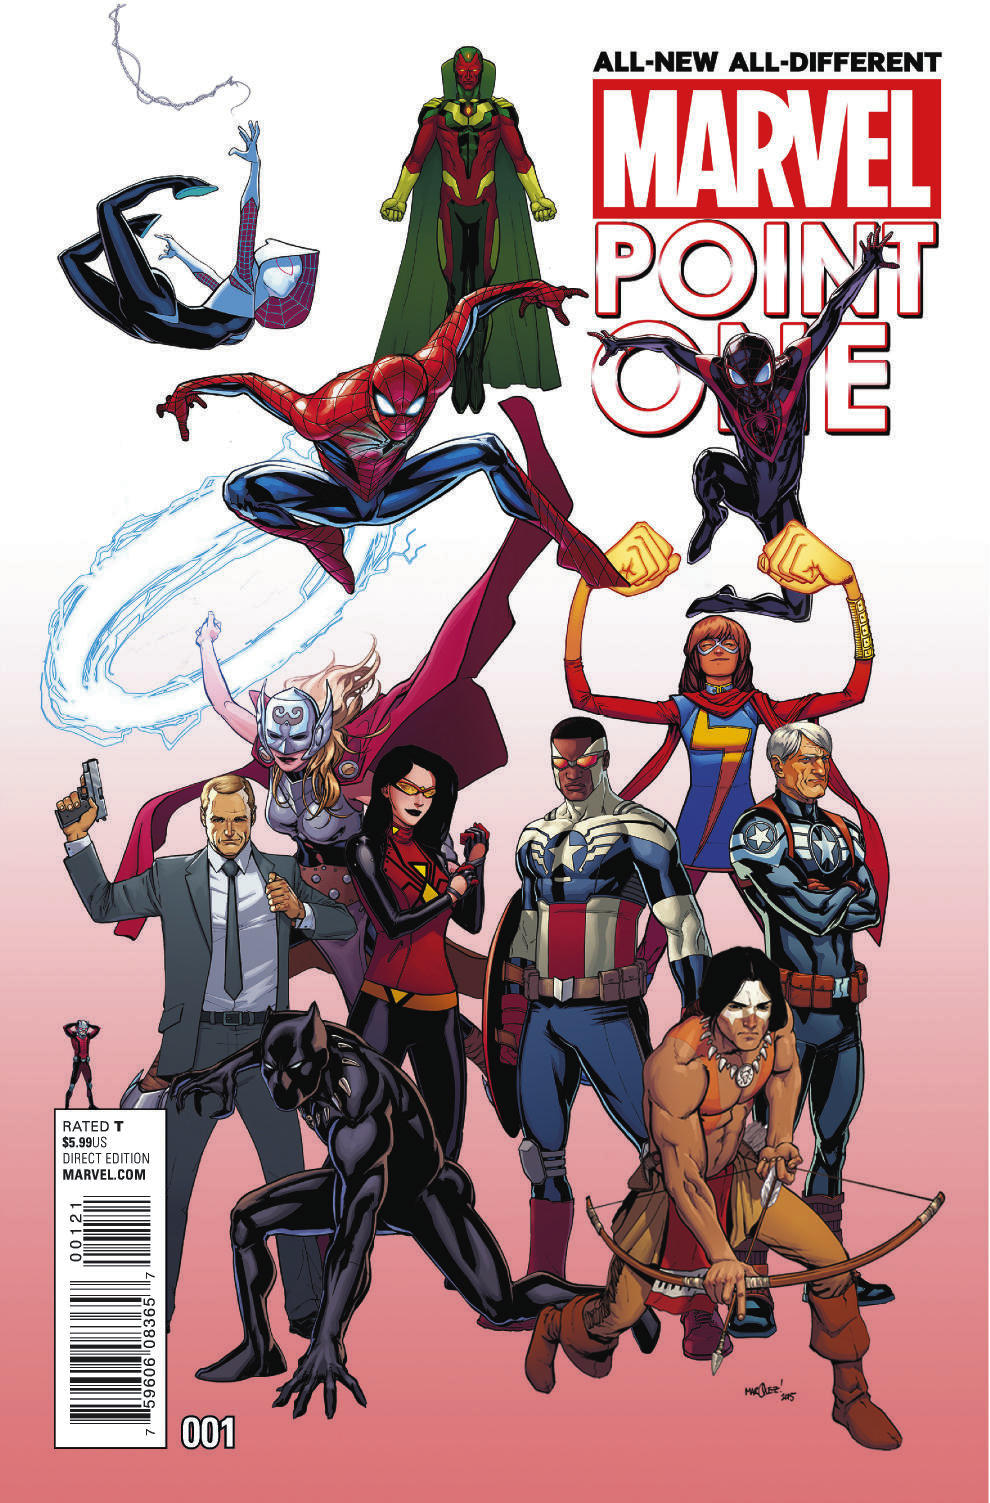 All-New, All-Different Marvel Point One Vol 1 1 Marquez Variant A.jpg